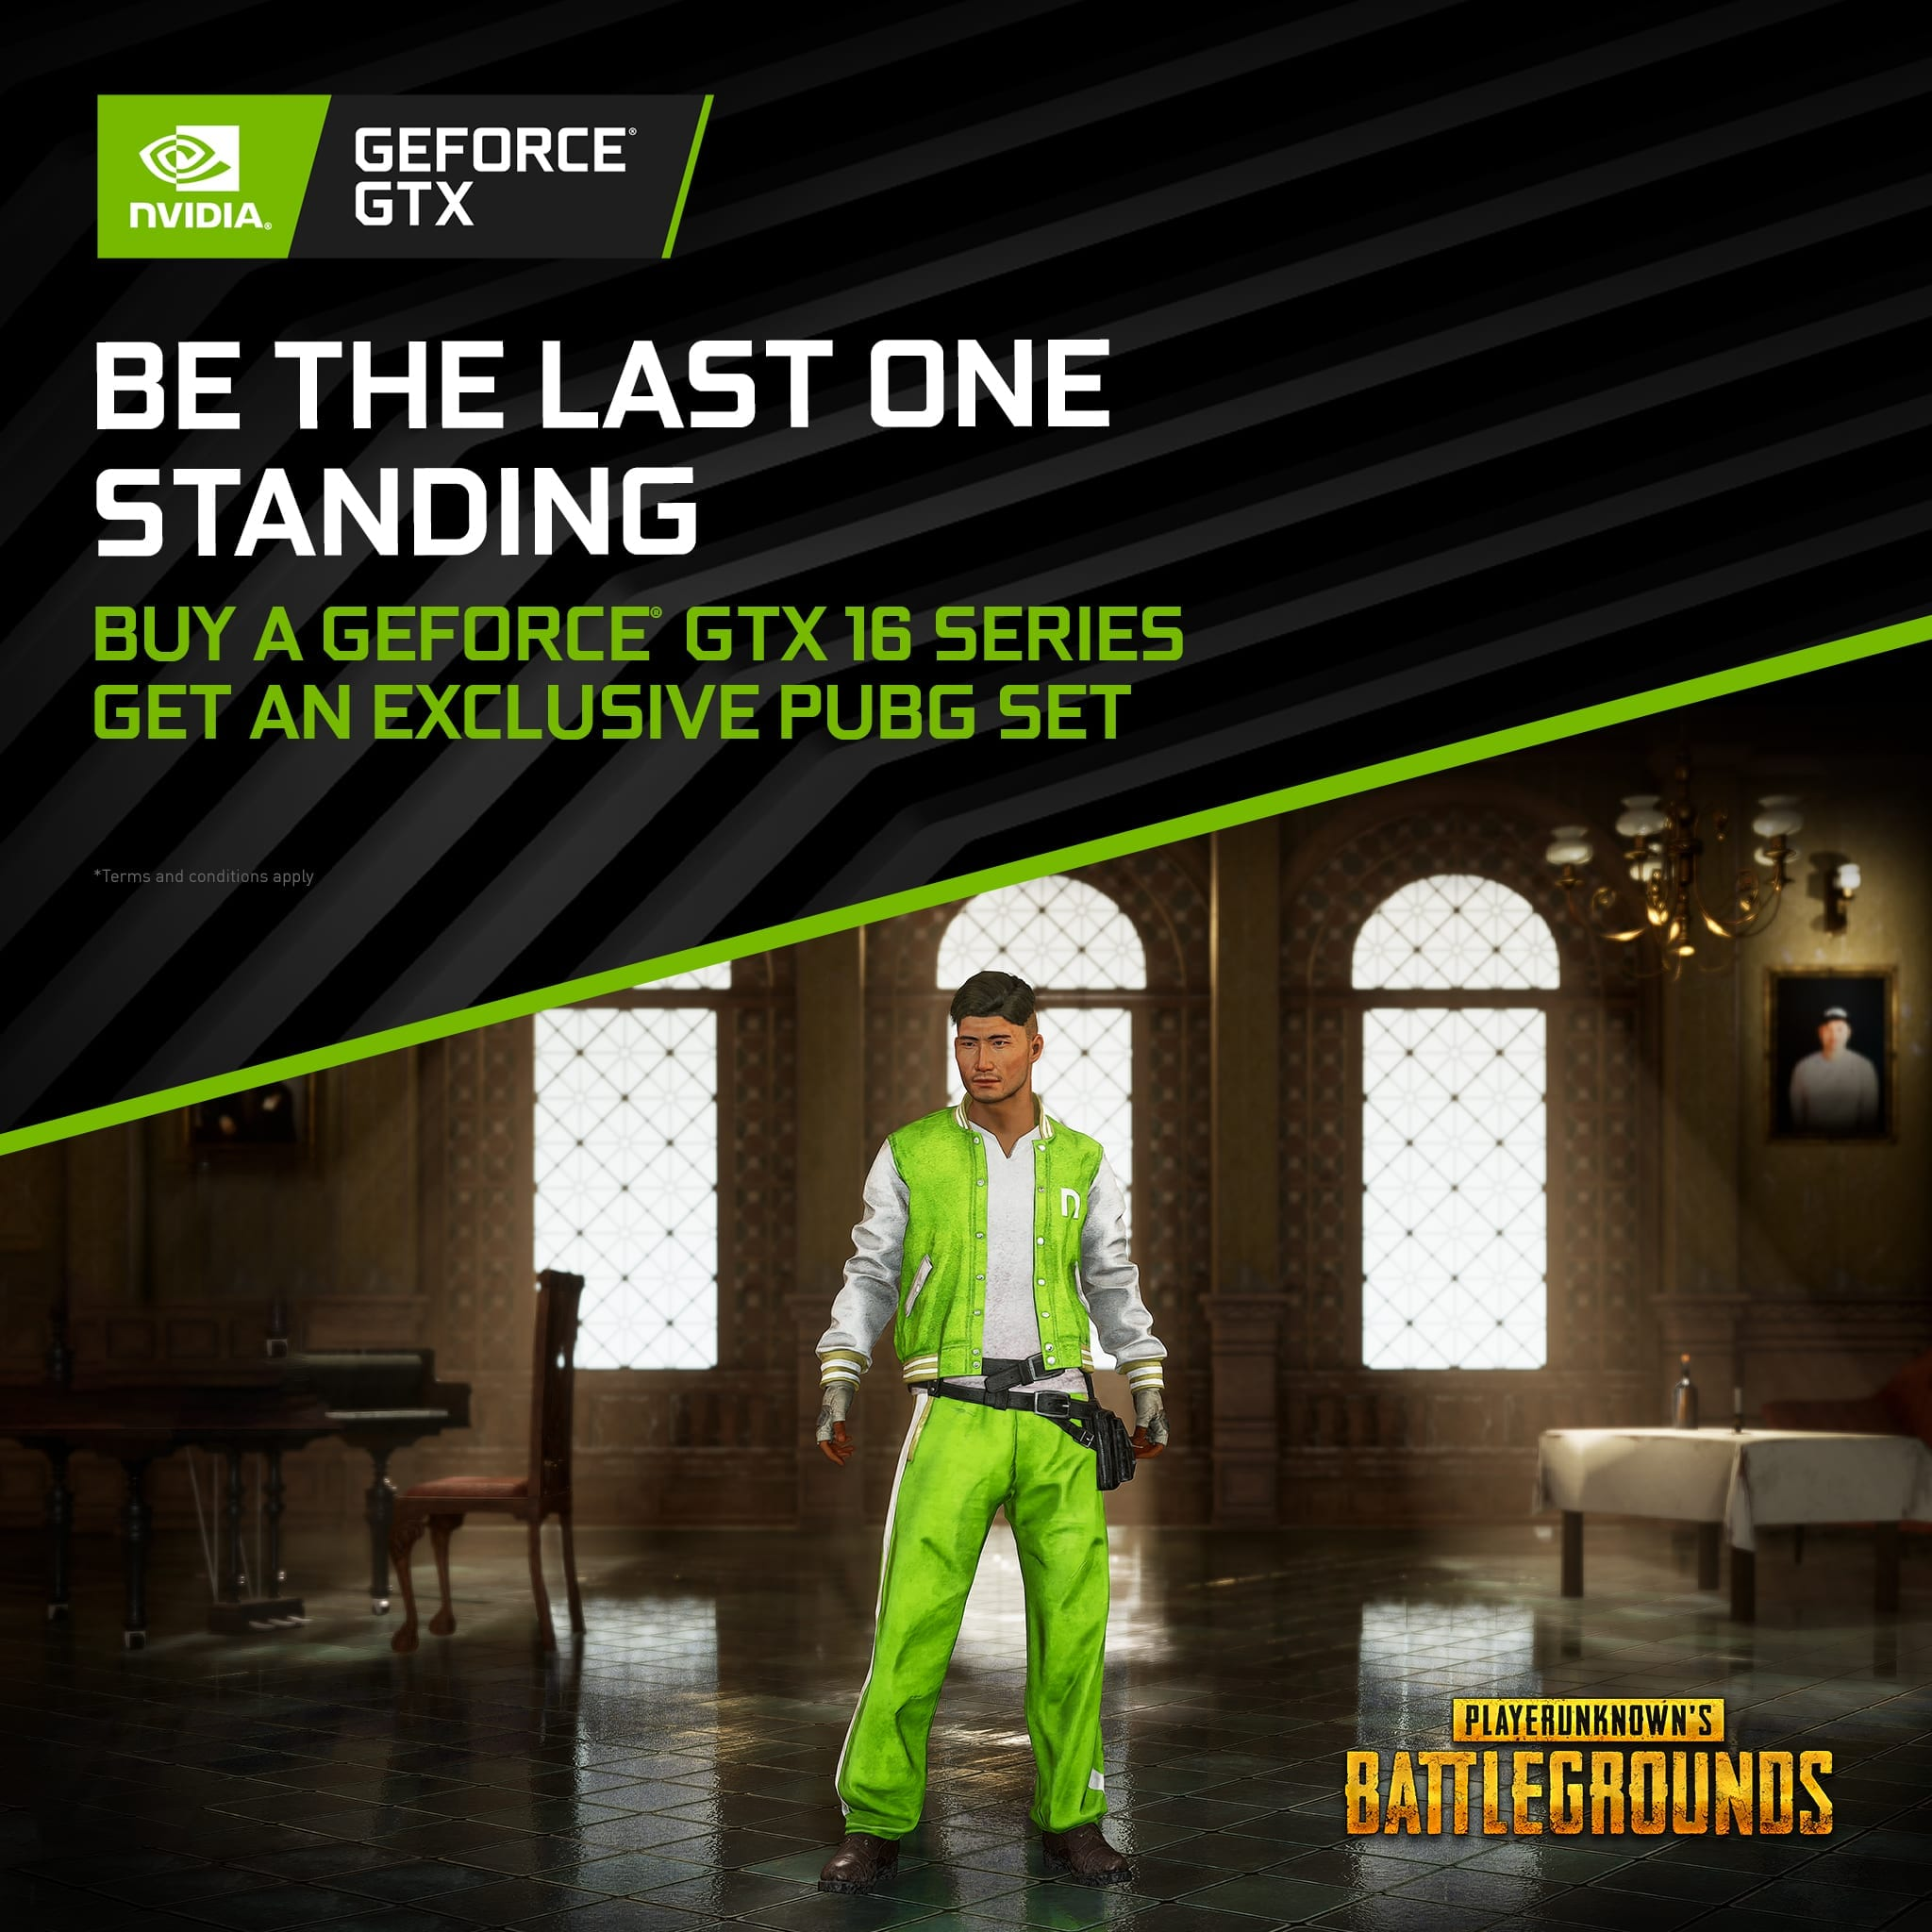 Buy GeForce GTX 16-series, Get the Exclusive NVIDIA